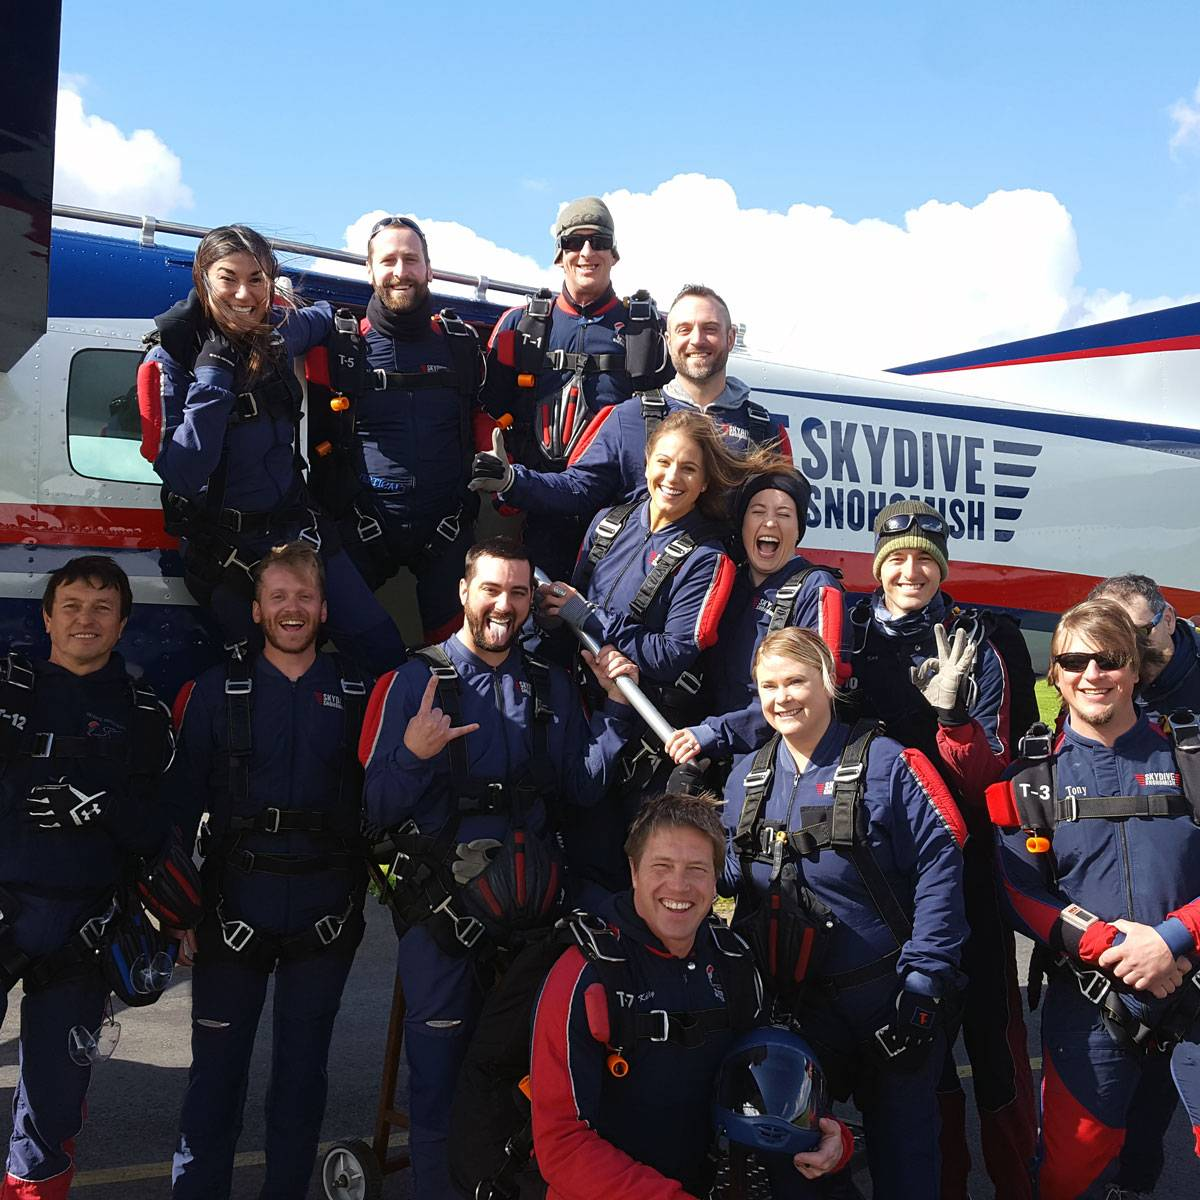 Skydive Snohomish staff smiling in front of Red, White, Blue and Black airplane.